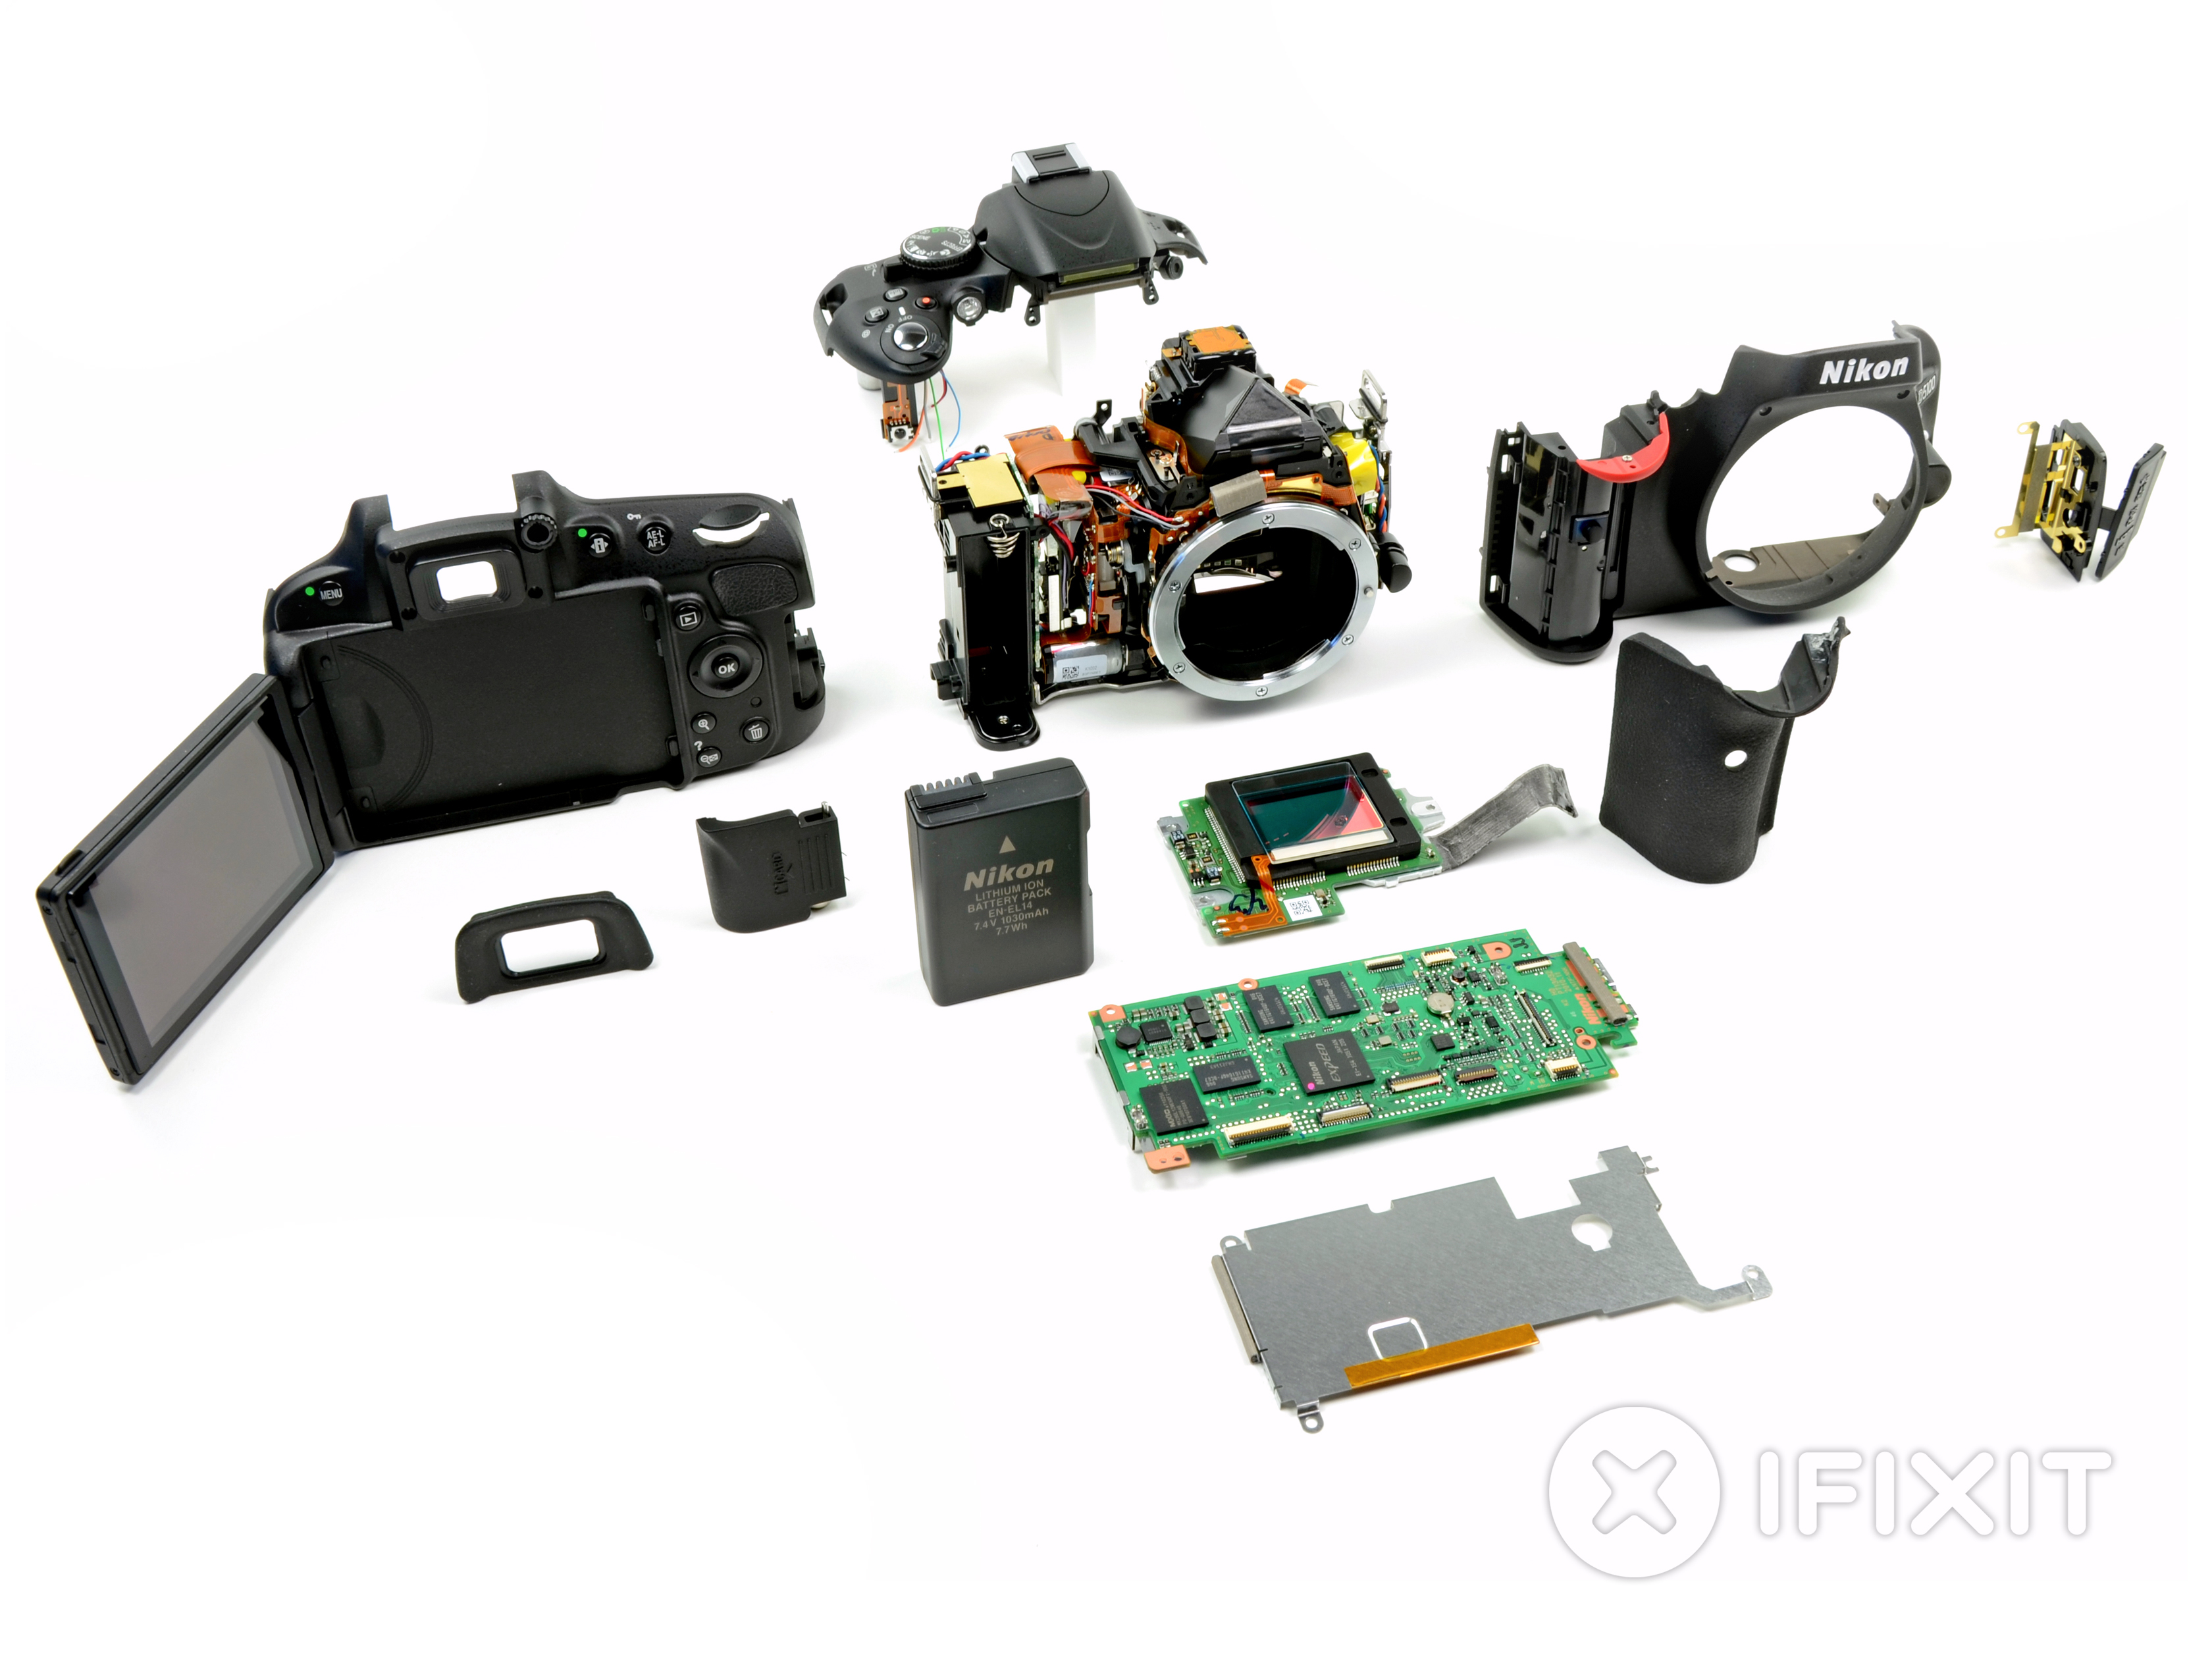 Nikon D5100 Teardown Ifixit Where To Get Parts Diagram For A D5000 Slr With Dx Vr Afs